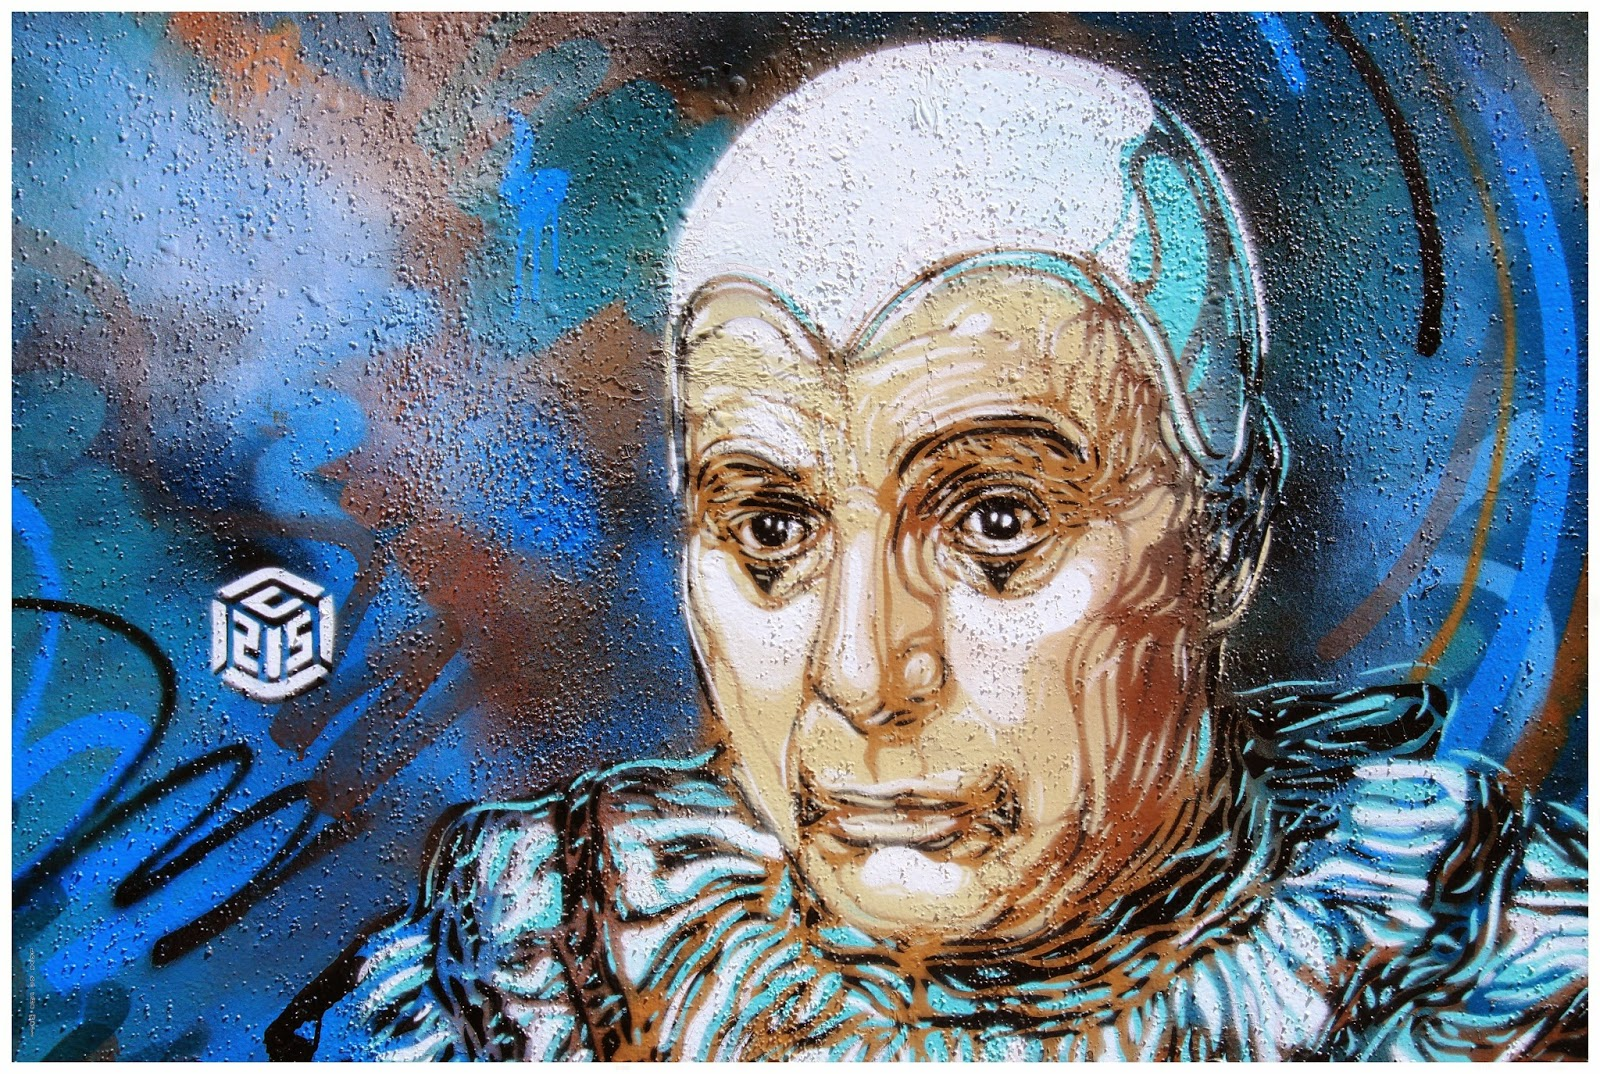 c215 loveonthewall